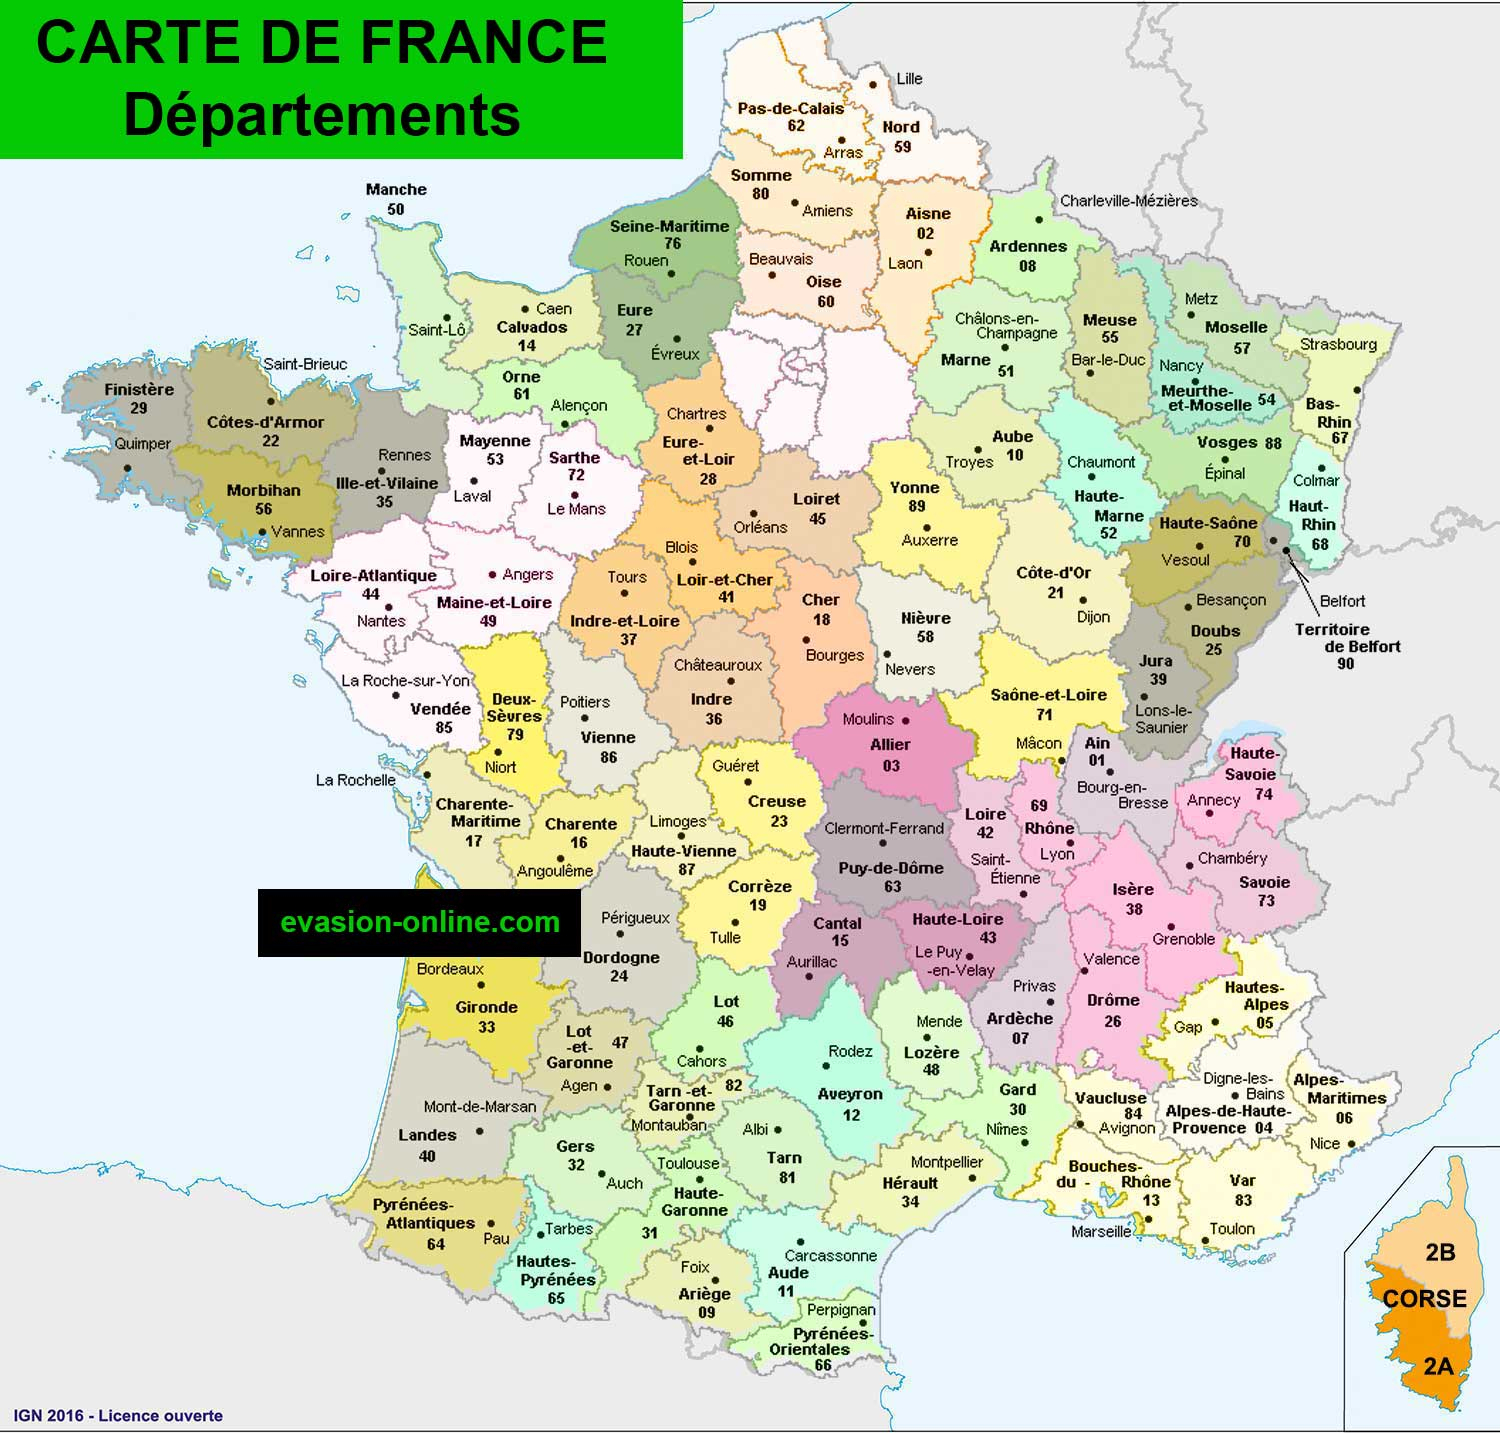 Carte France Départements » Vacances - Arts- Guides Voyages encequiconcerne Image Carte De France Avec Departement